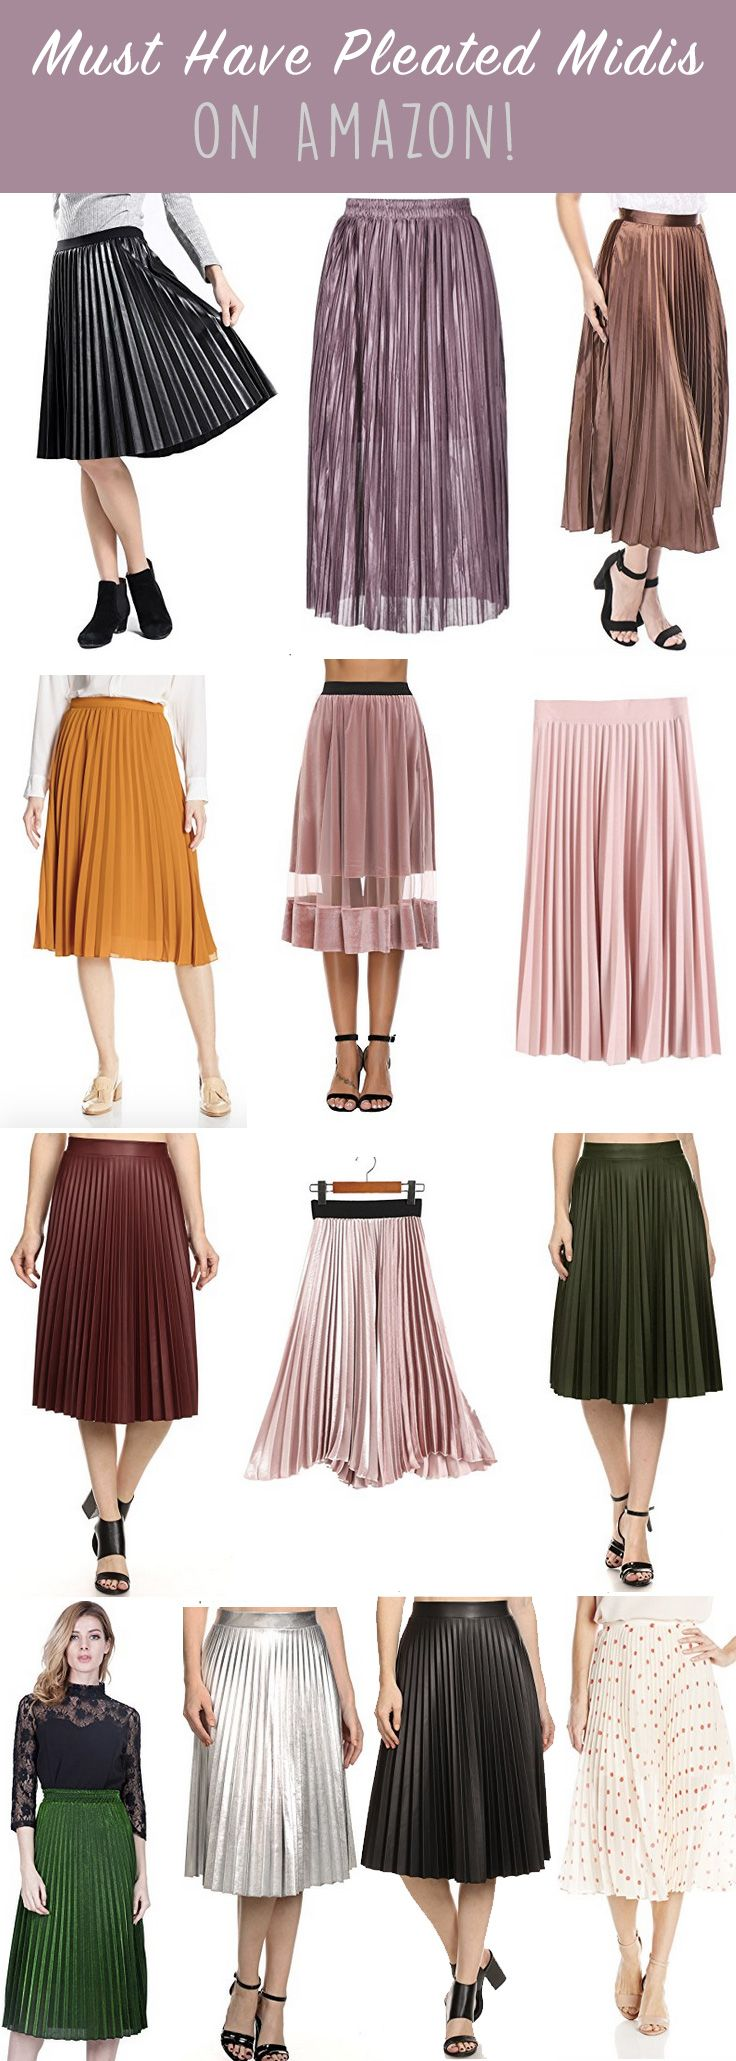 Pleated Midi Skirt Round Up On Amazon Style Chic